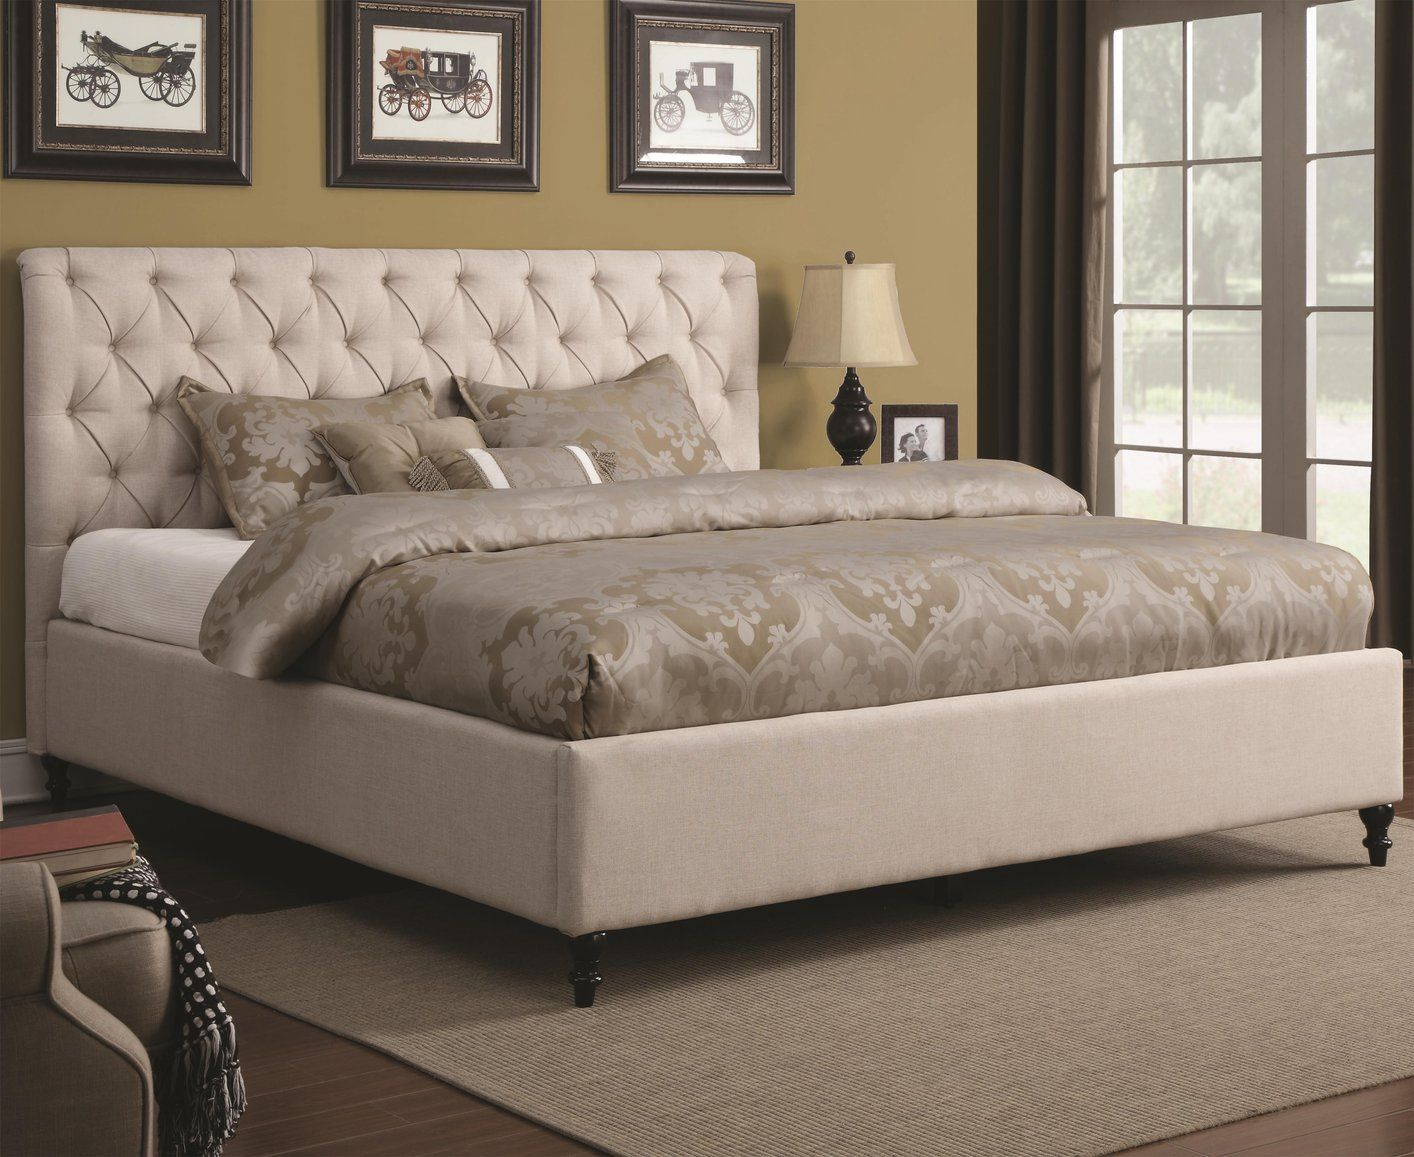 Beautiful Beige Fabric California King Size Bed Beds for